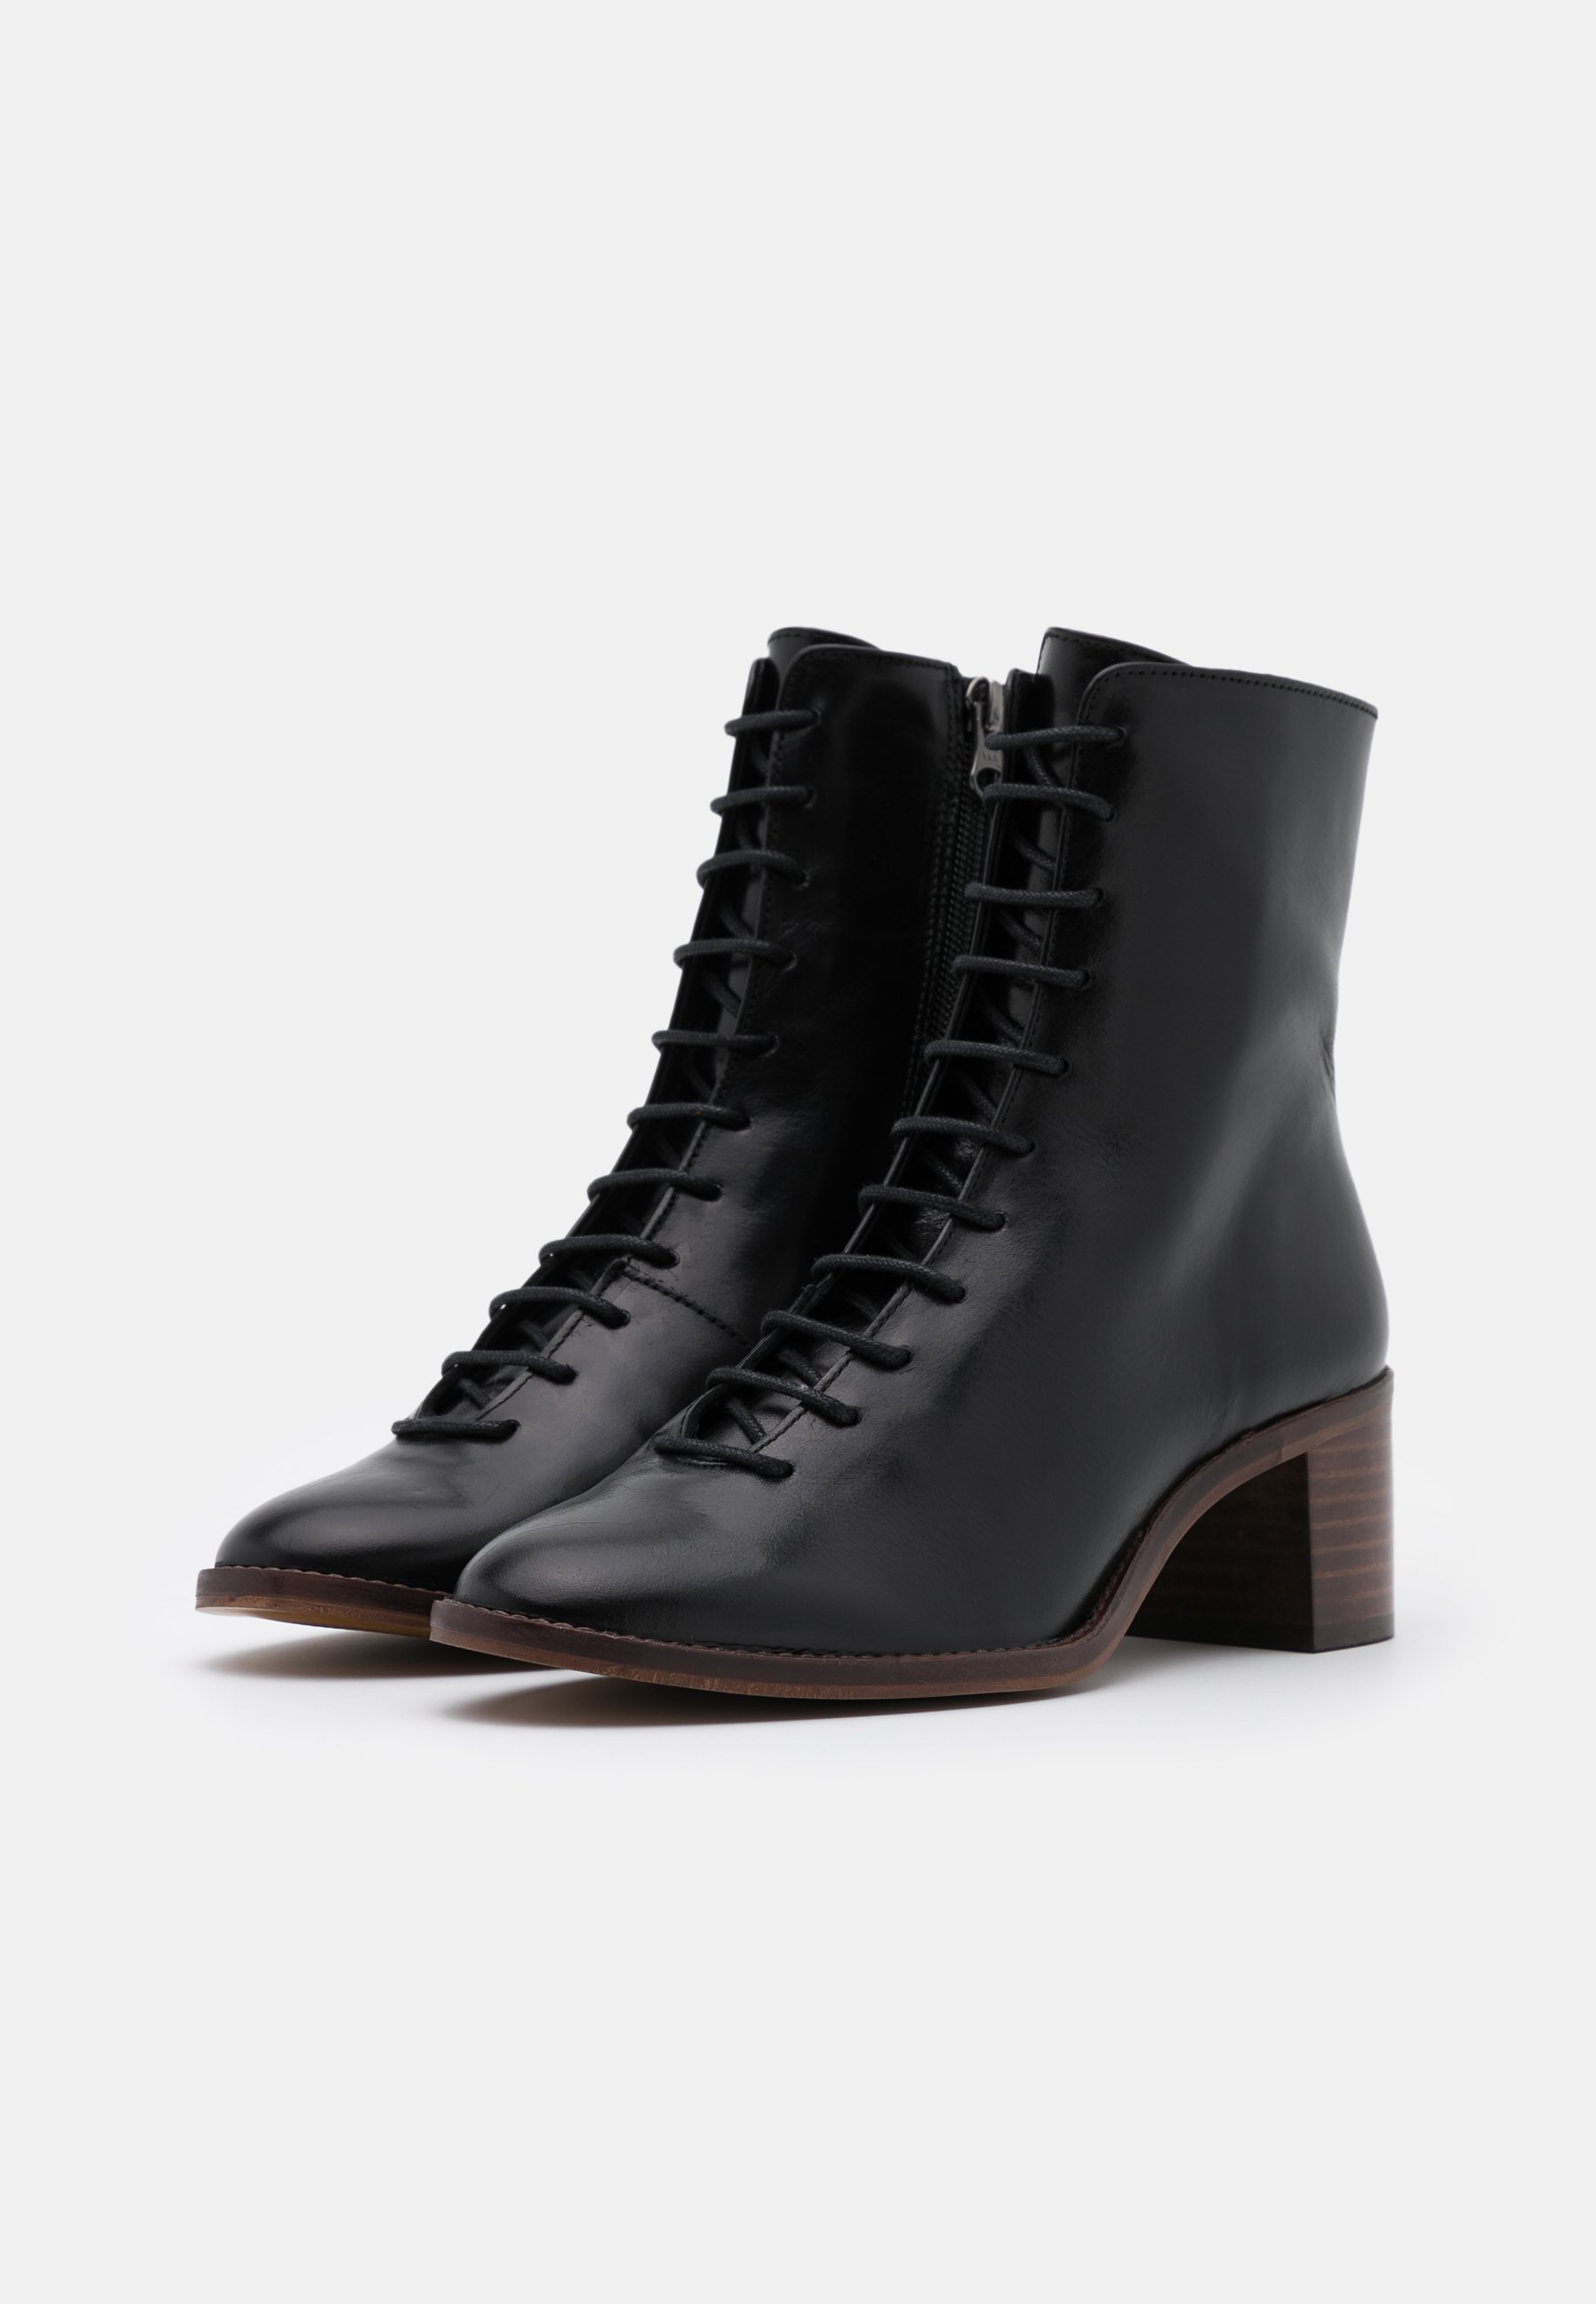 Factory Price Recommend Cheap Women's Shoes Jonak BOMBAY Lace-up ankle boots noir aRsDsPLfo 0X8gYWFbd